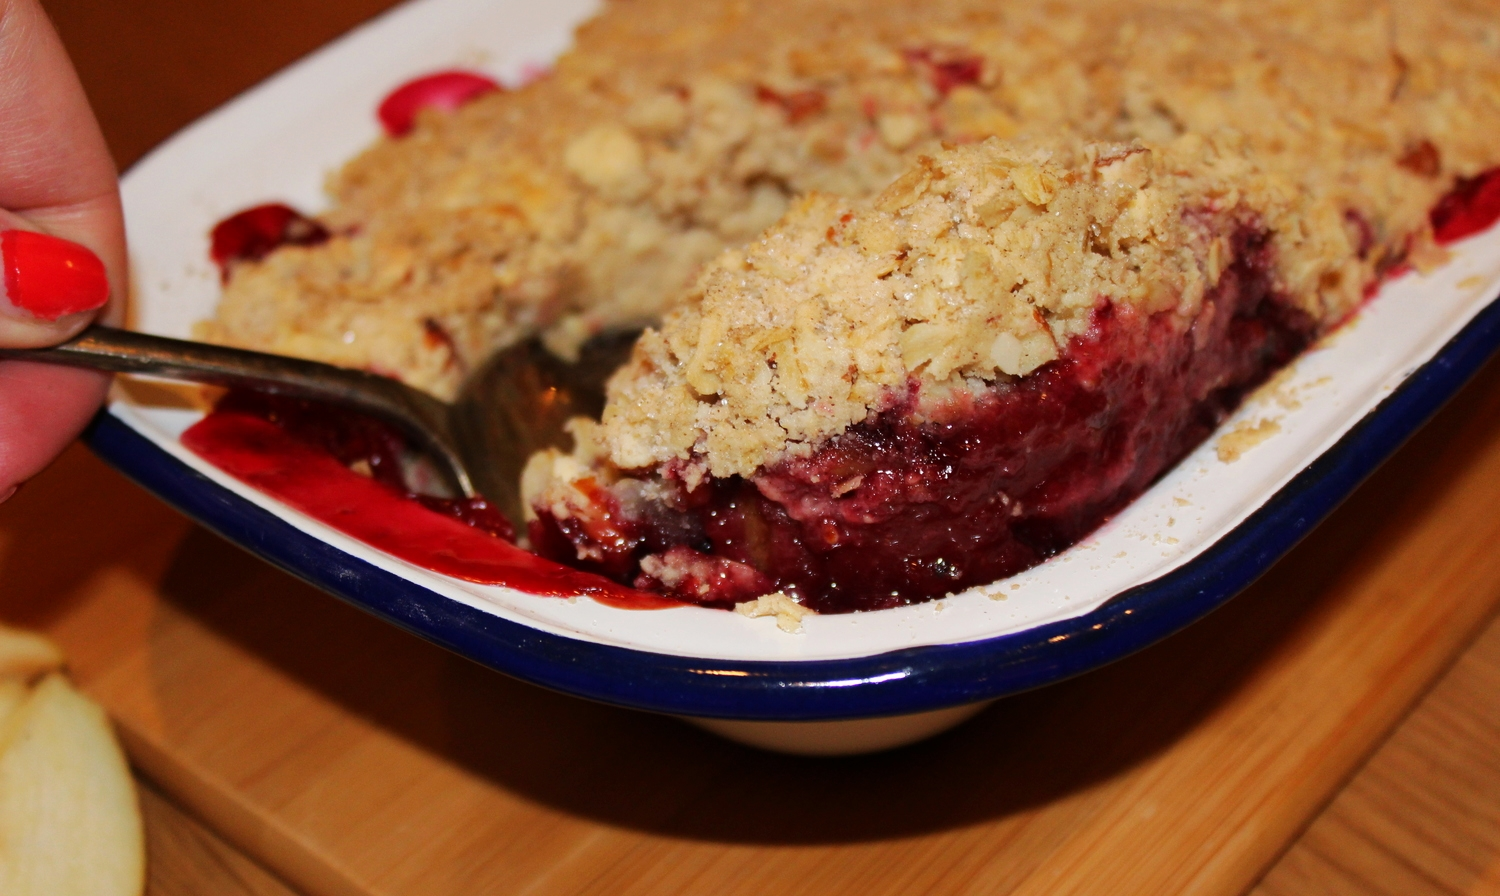 Apple & Berry Crumble